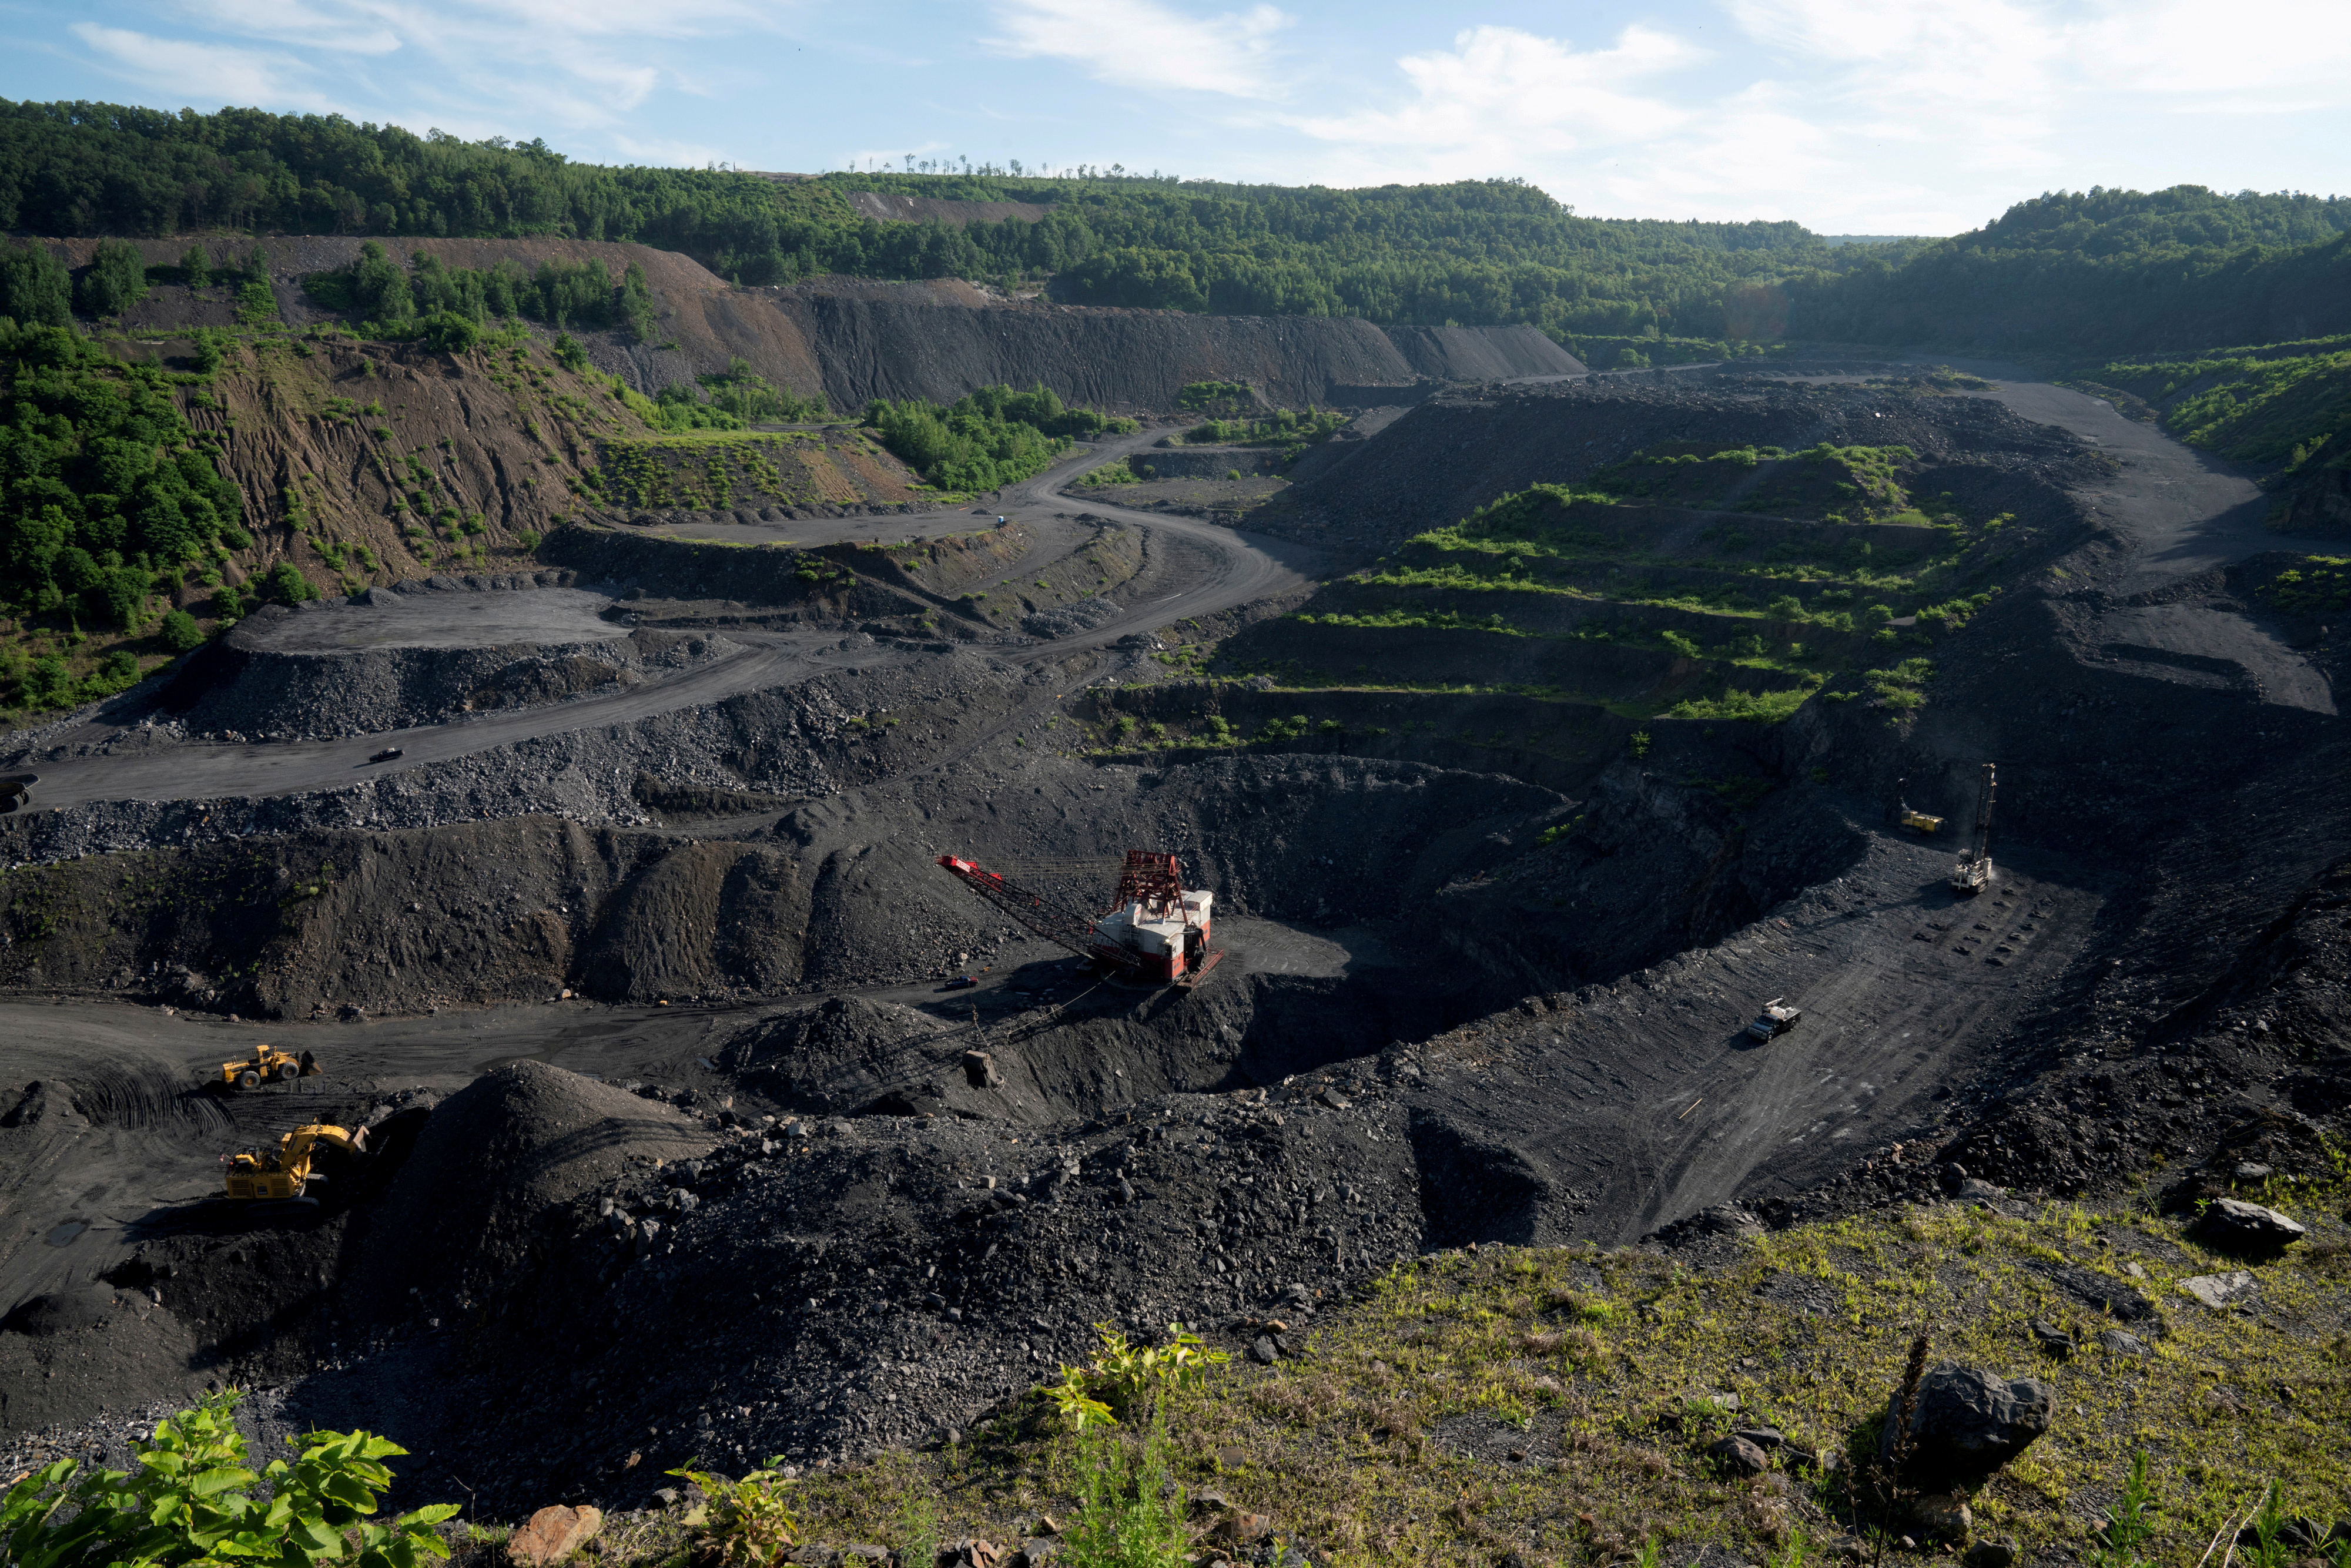 G7 Agrees to Stop International Funding for Coal